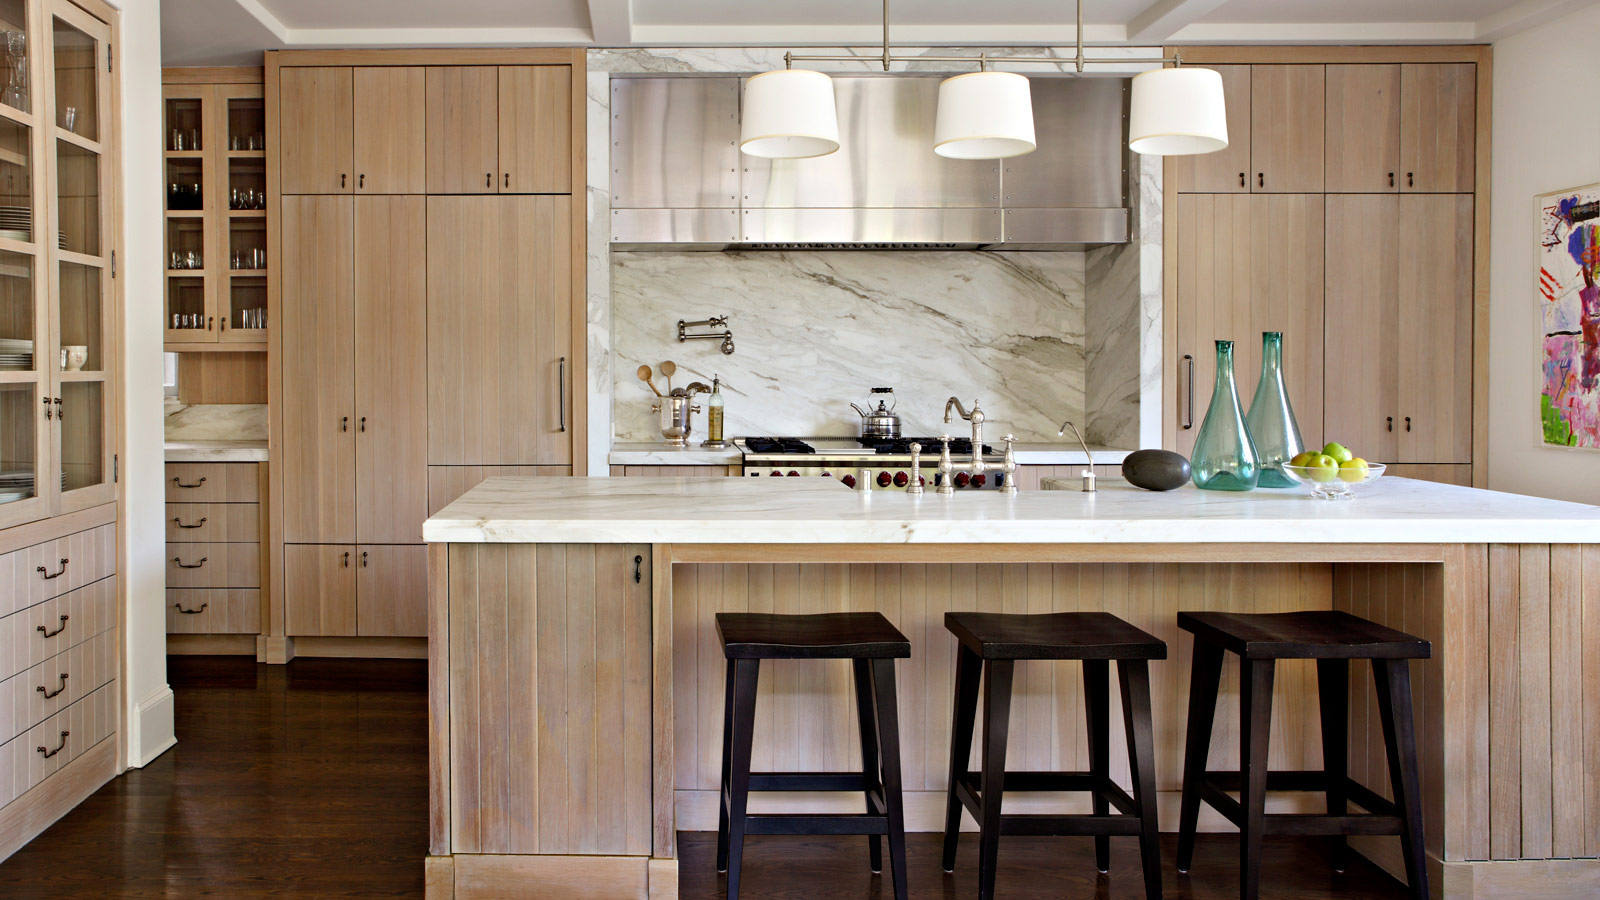 Anyeongchinguyo interior design for Bleached wood kitchen cabinets